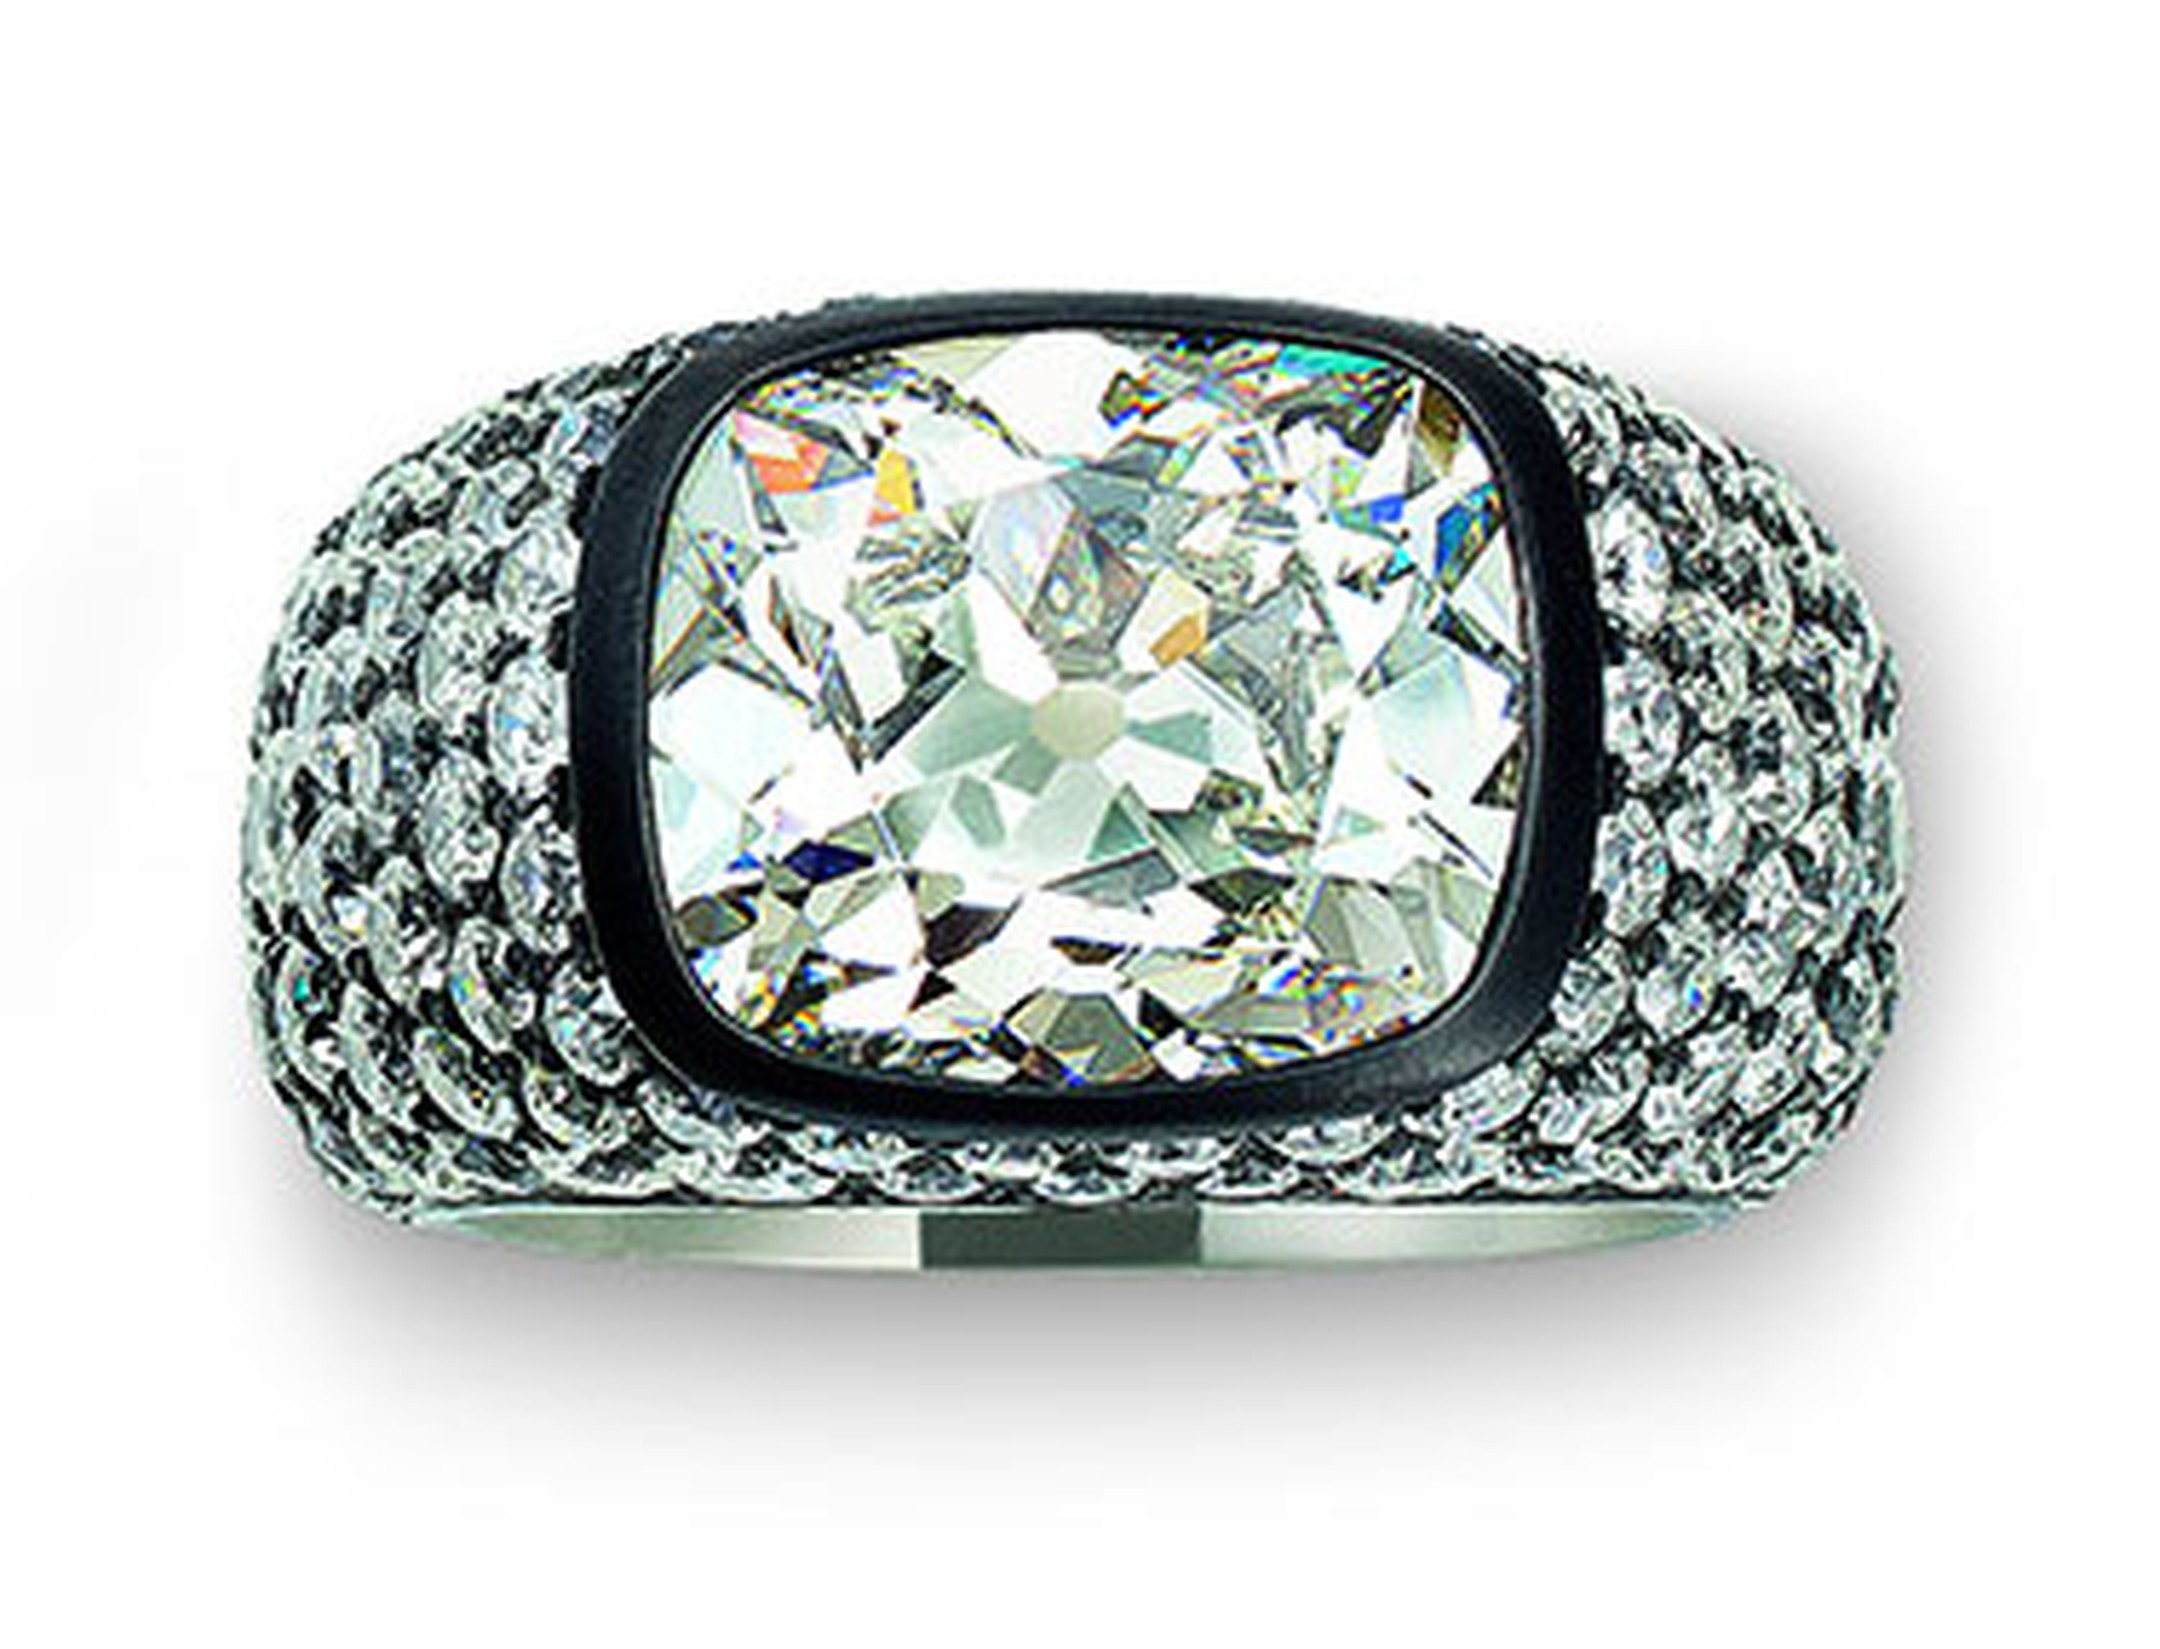 Hemmerle-ring-black-finished-silver-white-gold-diamond-cts-old-cut-diamonds-0119